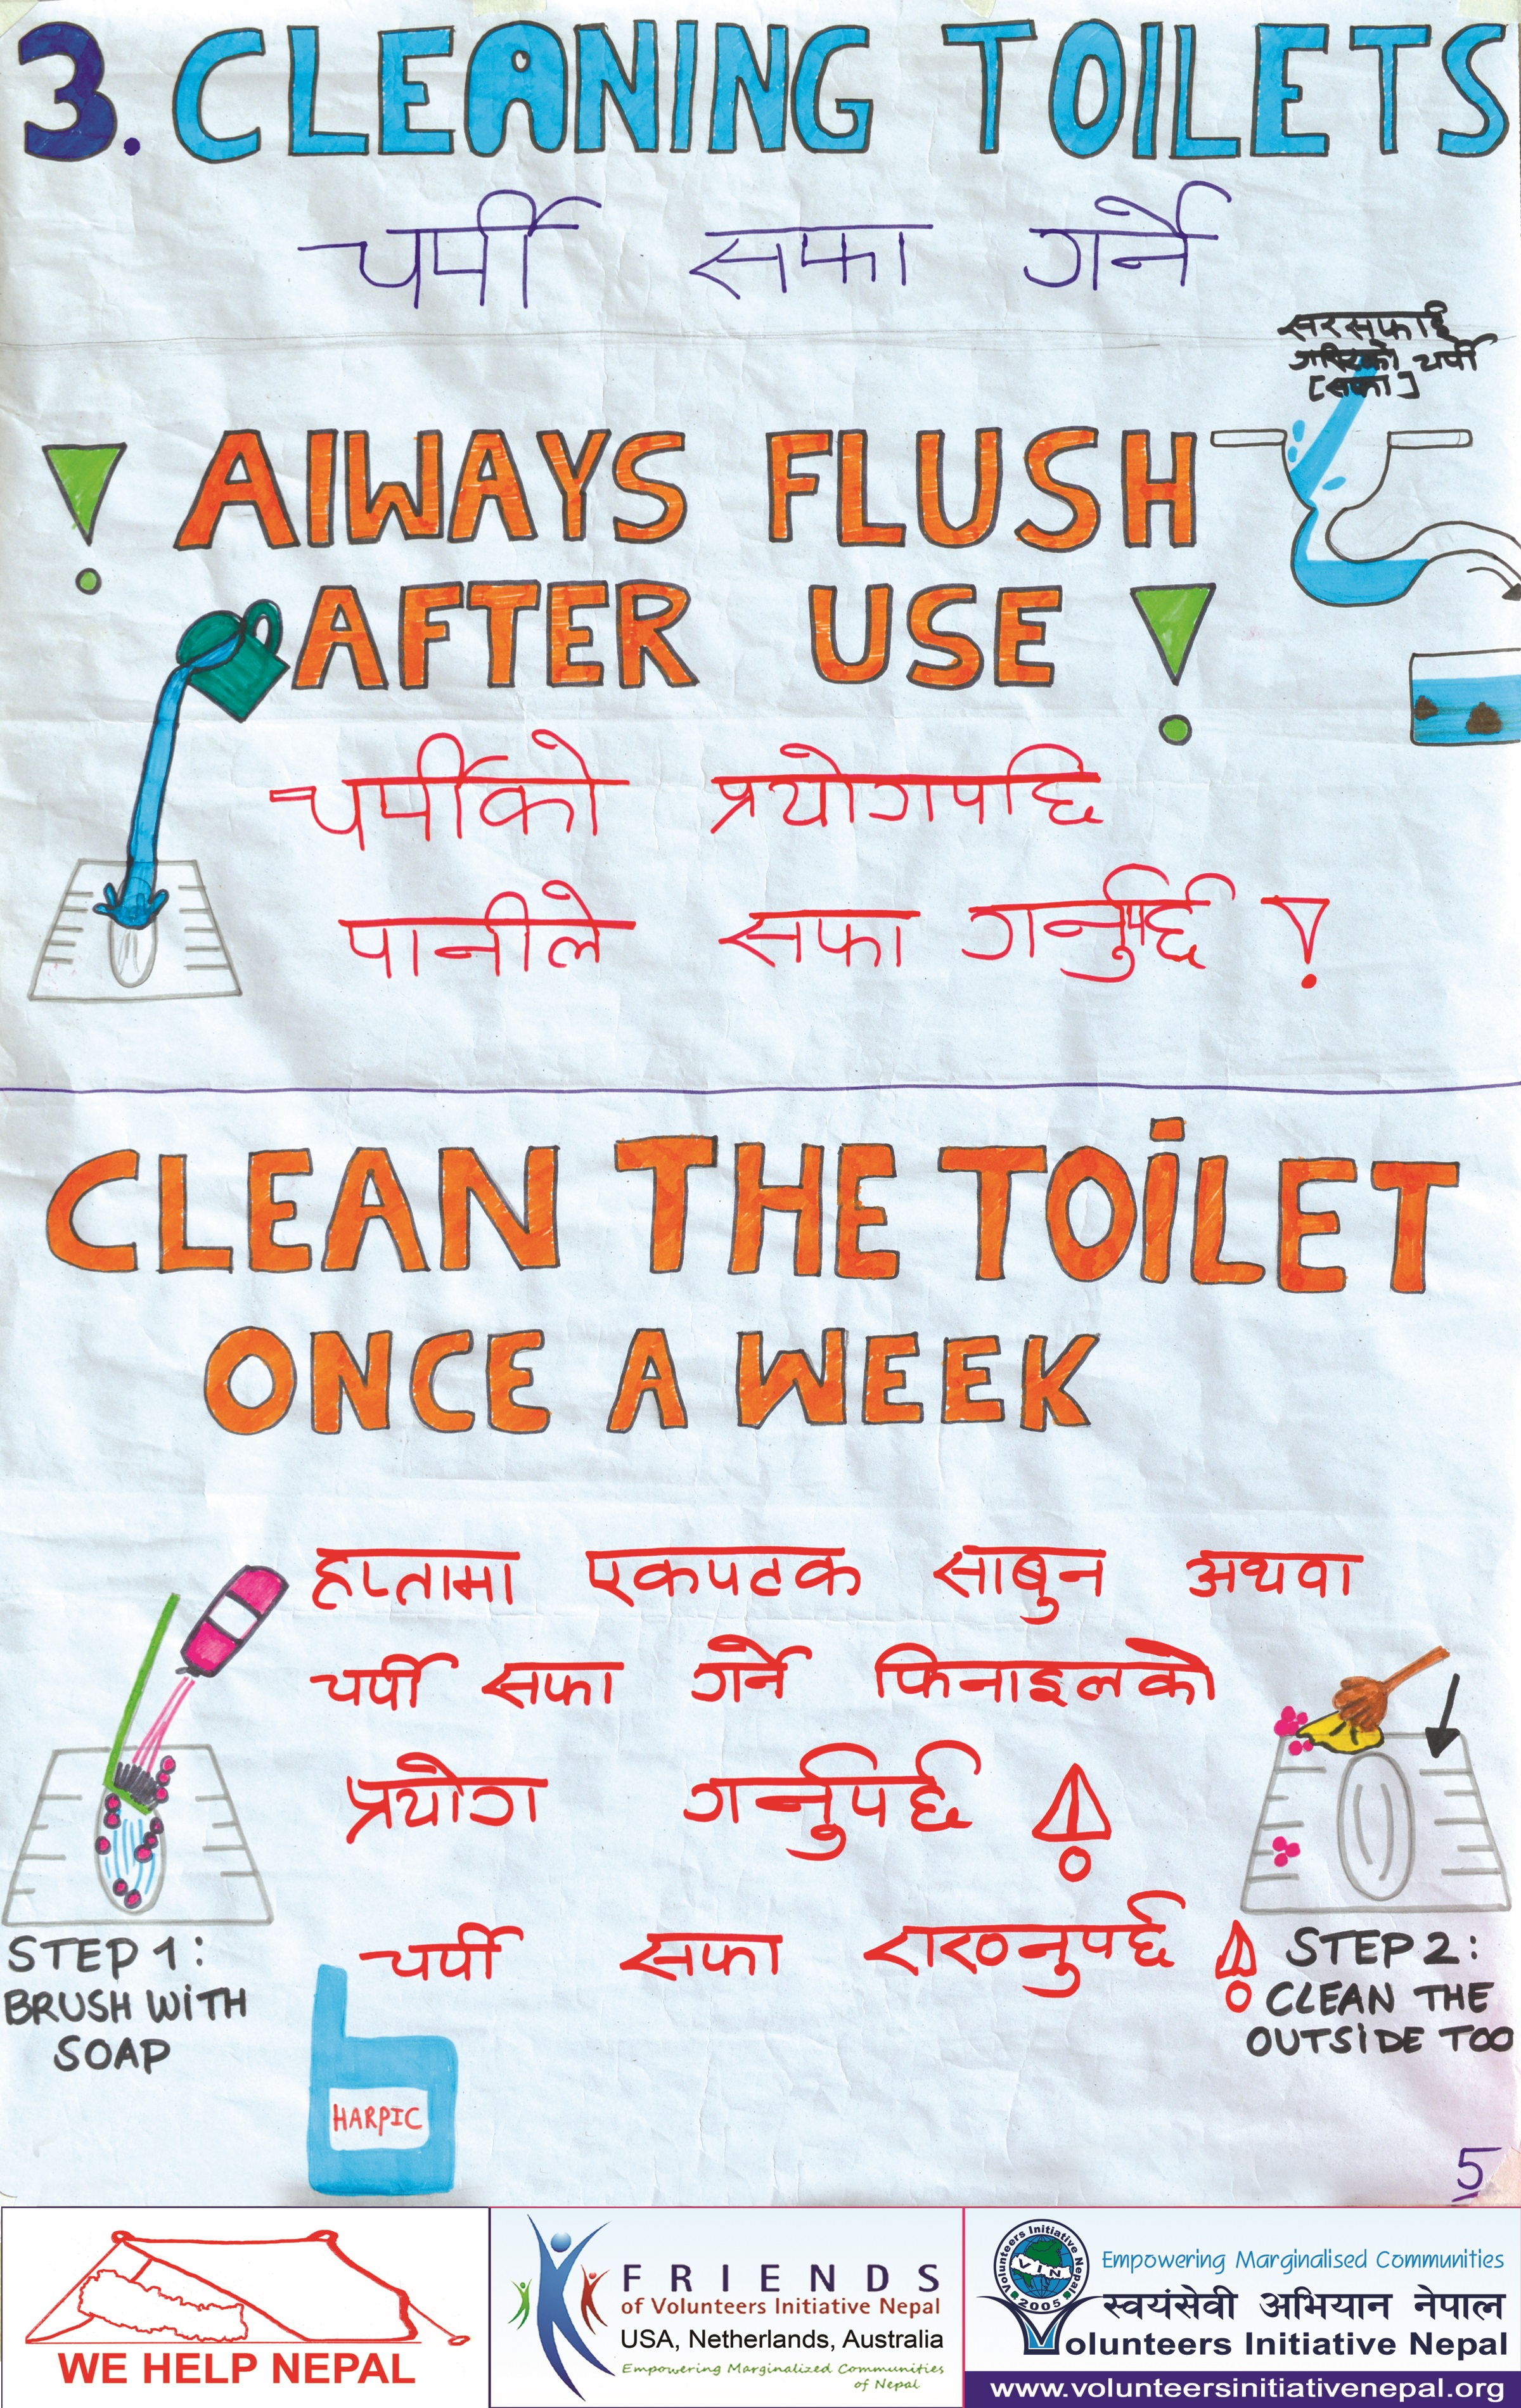 Cleaning toilet pamplet